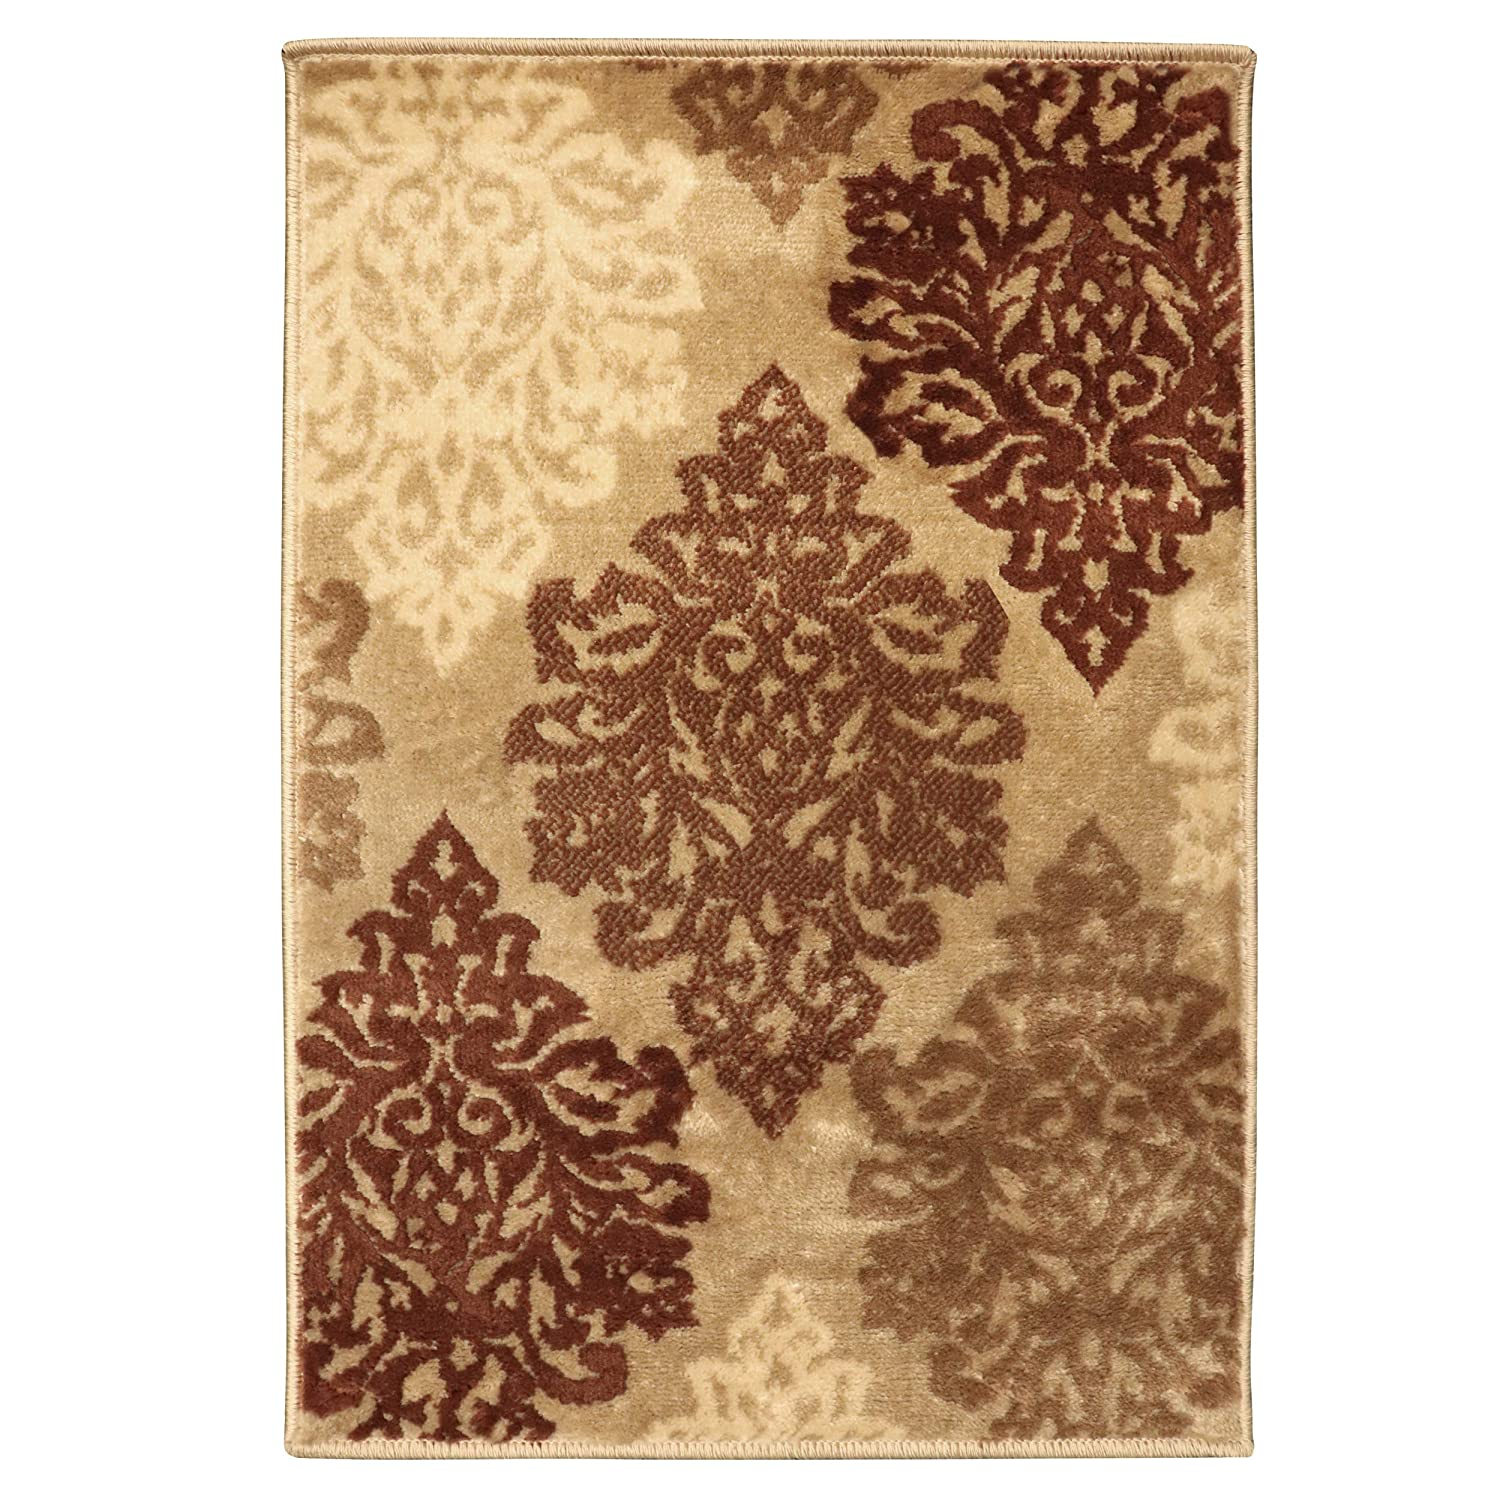 27 x 8 Runner Superior Danvers Collection Area Rug Affordable Contemporary Rugs Modern Elegant Damask Pattern Beige 10mm Pile Height with Jute Backing